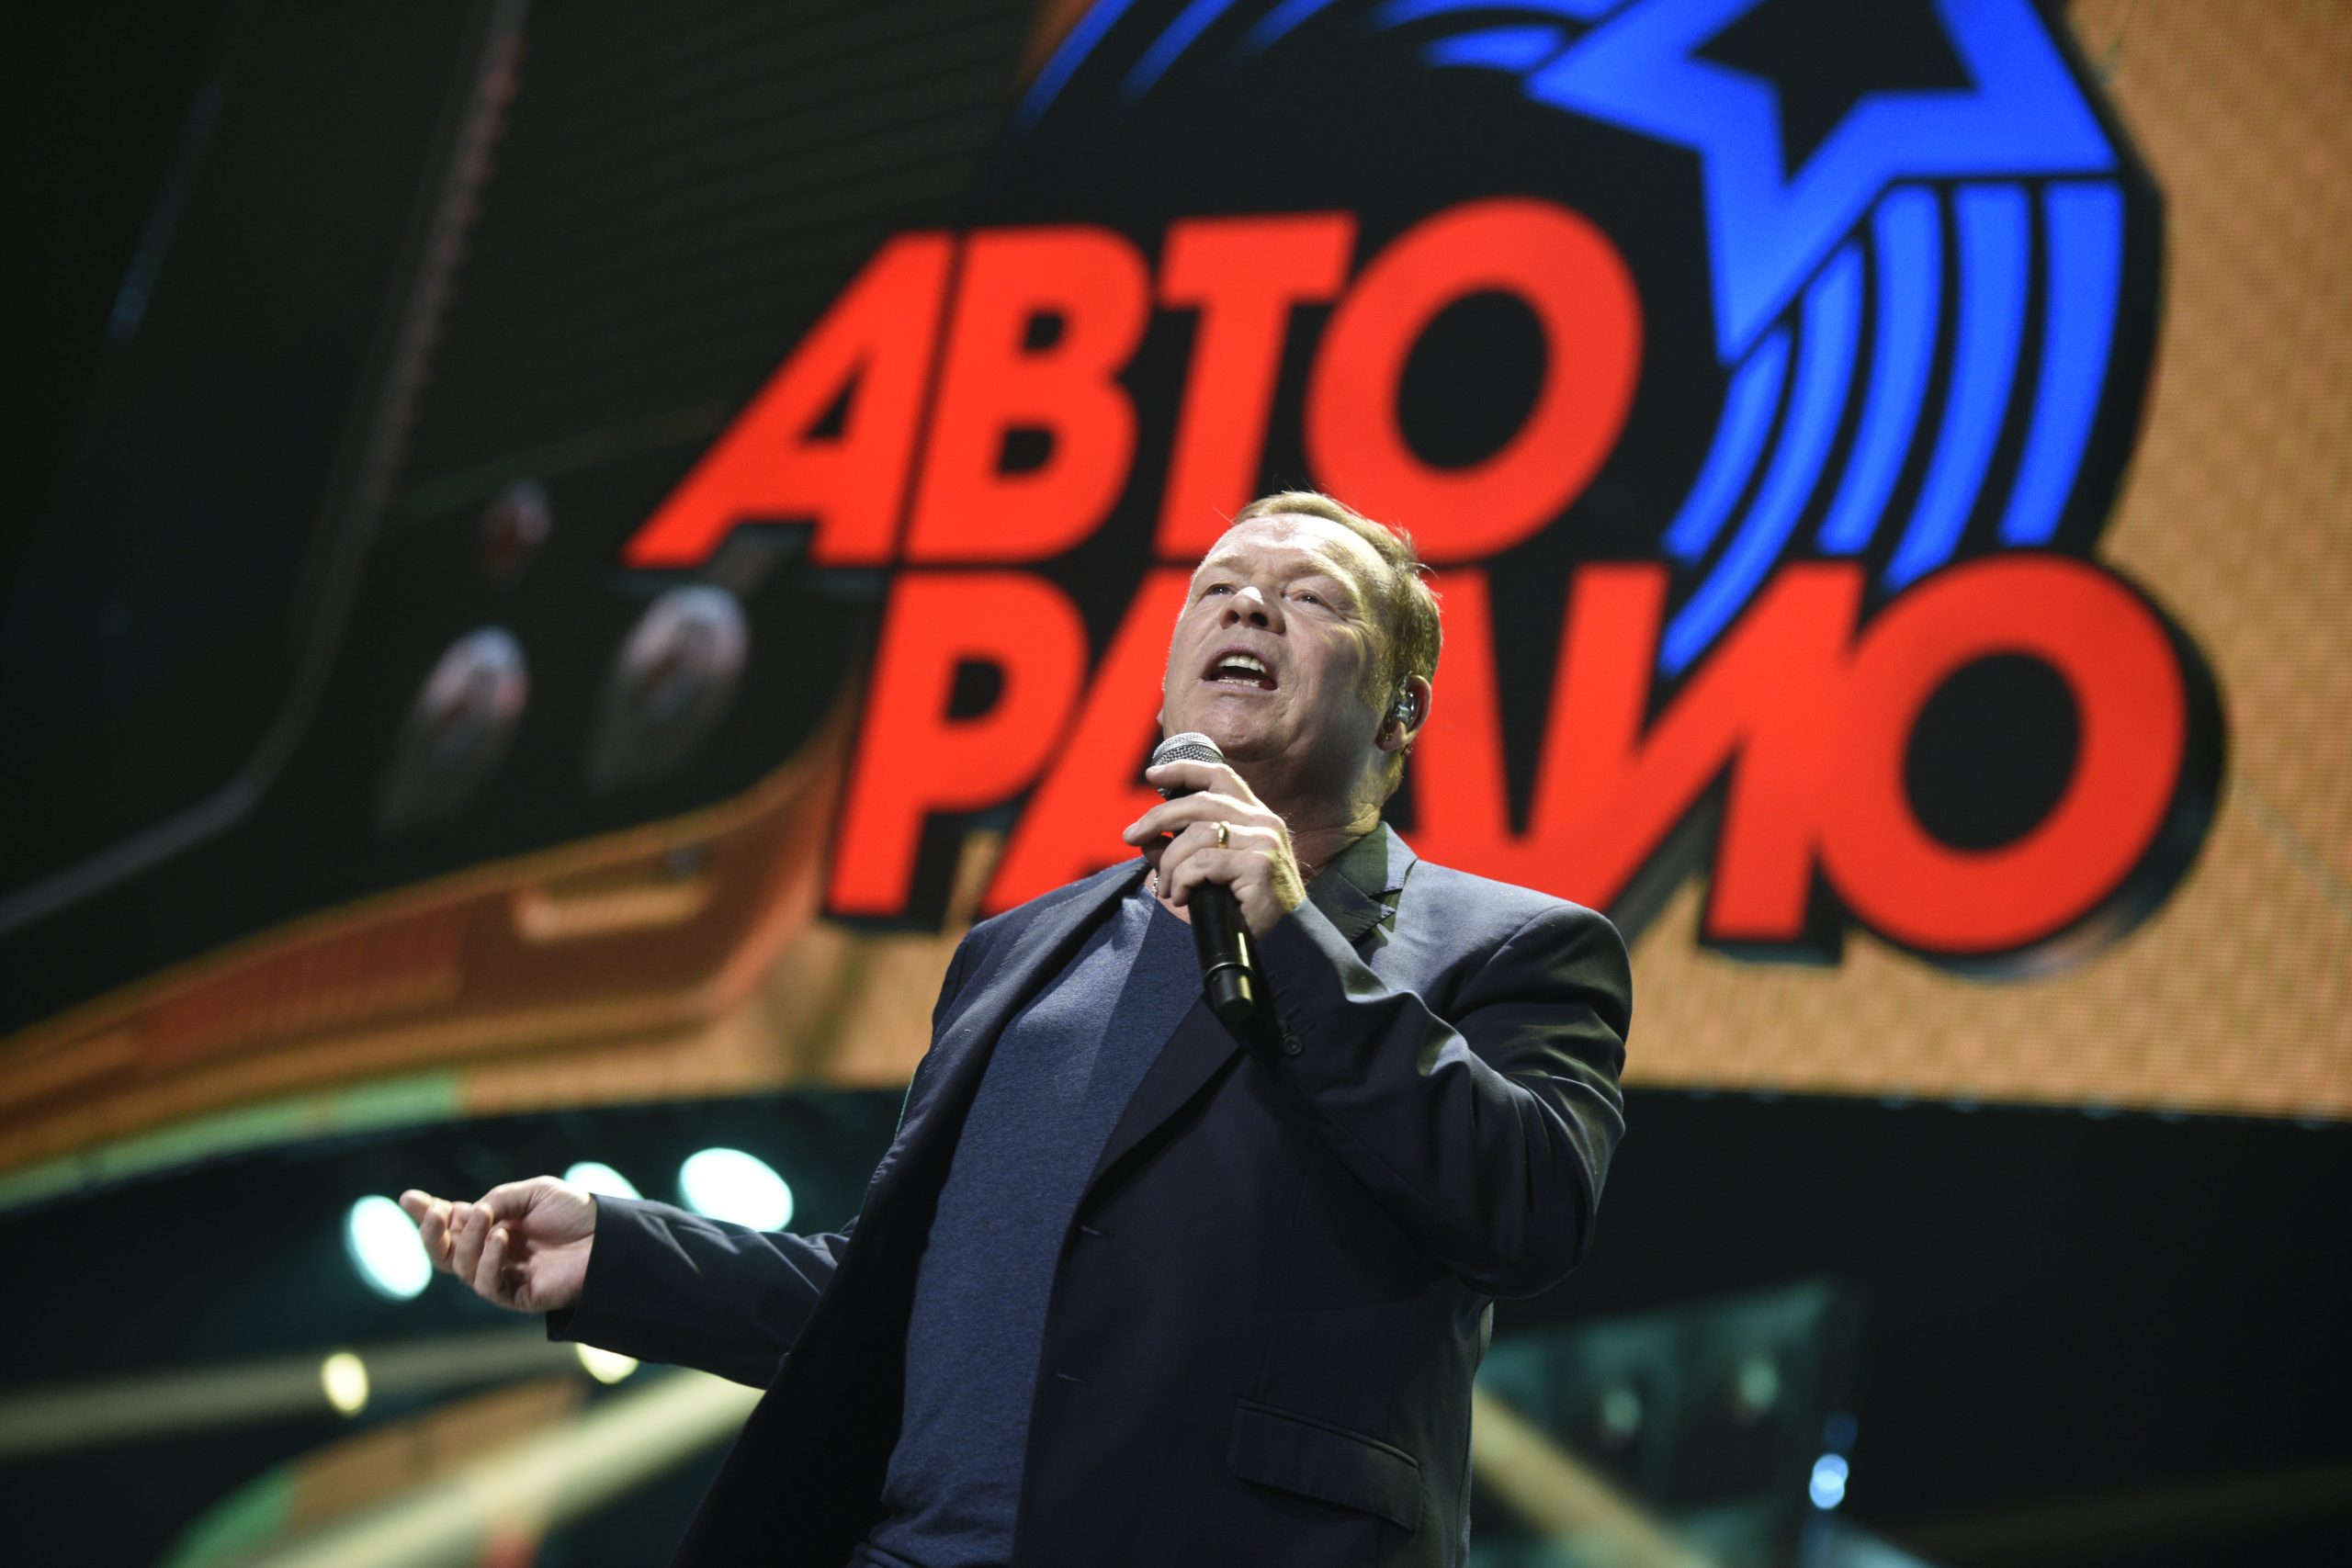 UB40 feat. Ali Campbell – Kingston Town (2016)